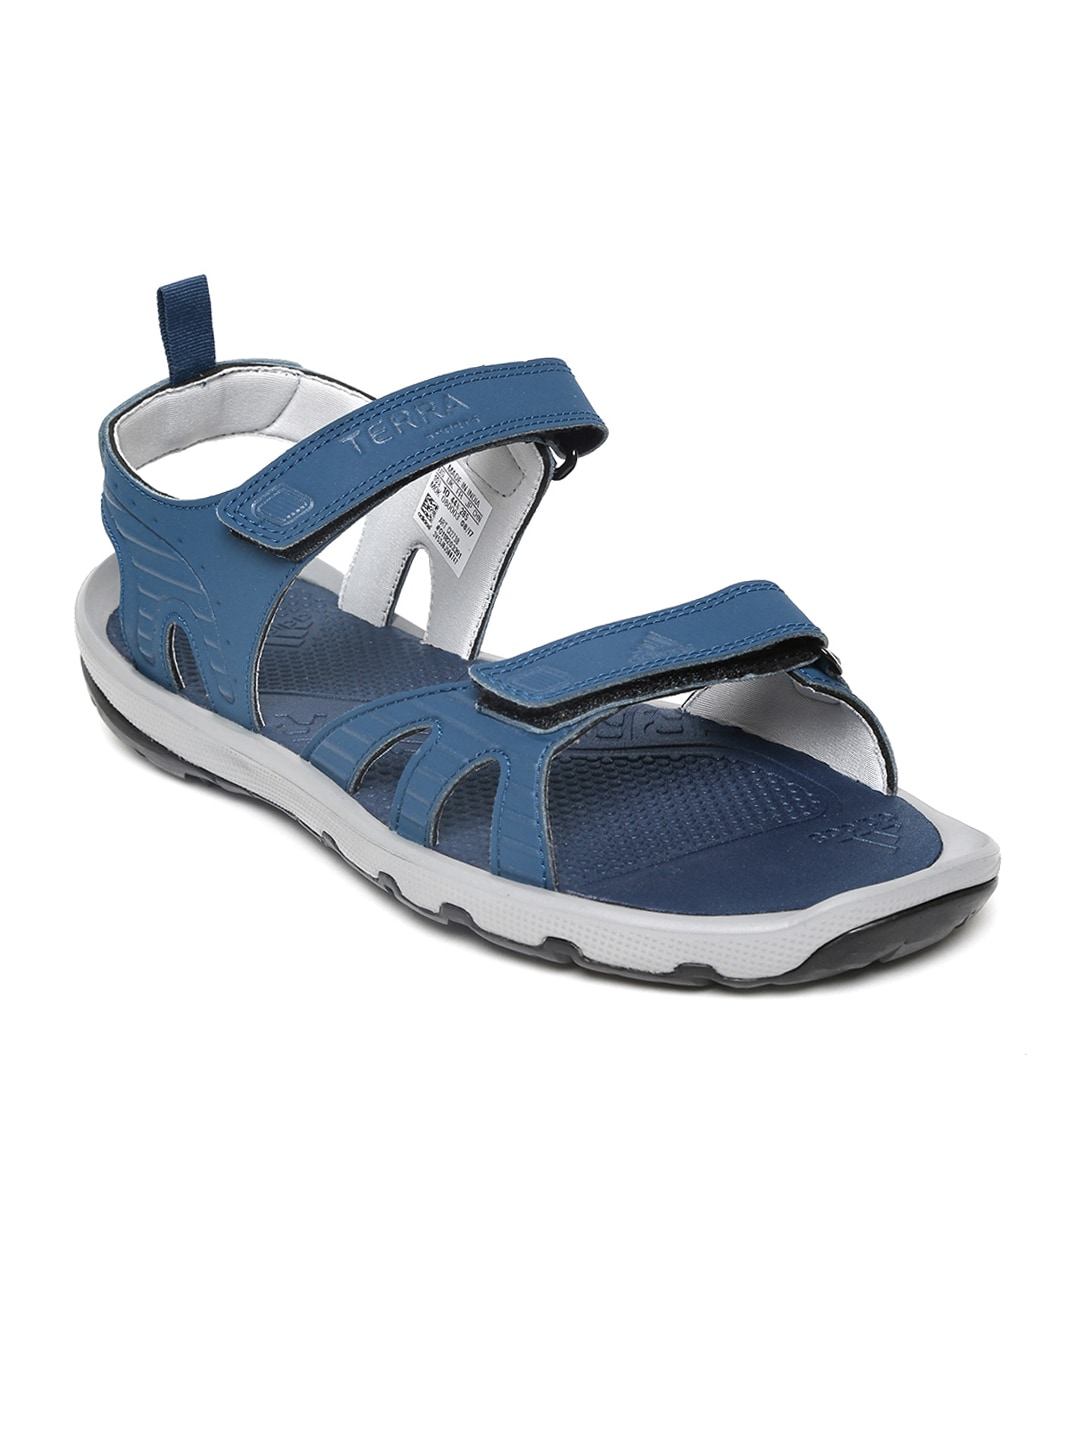 68095fa912b5 Adidas Sandal Sandals - Buy Adidas Sandal Sandals online in India